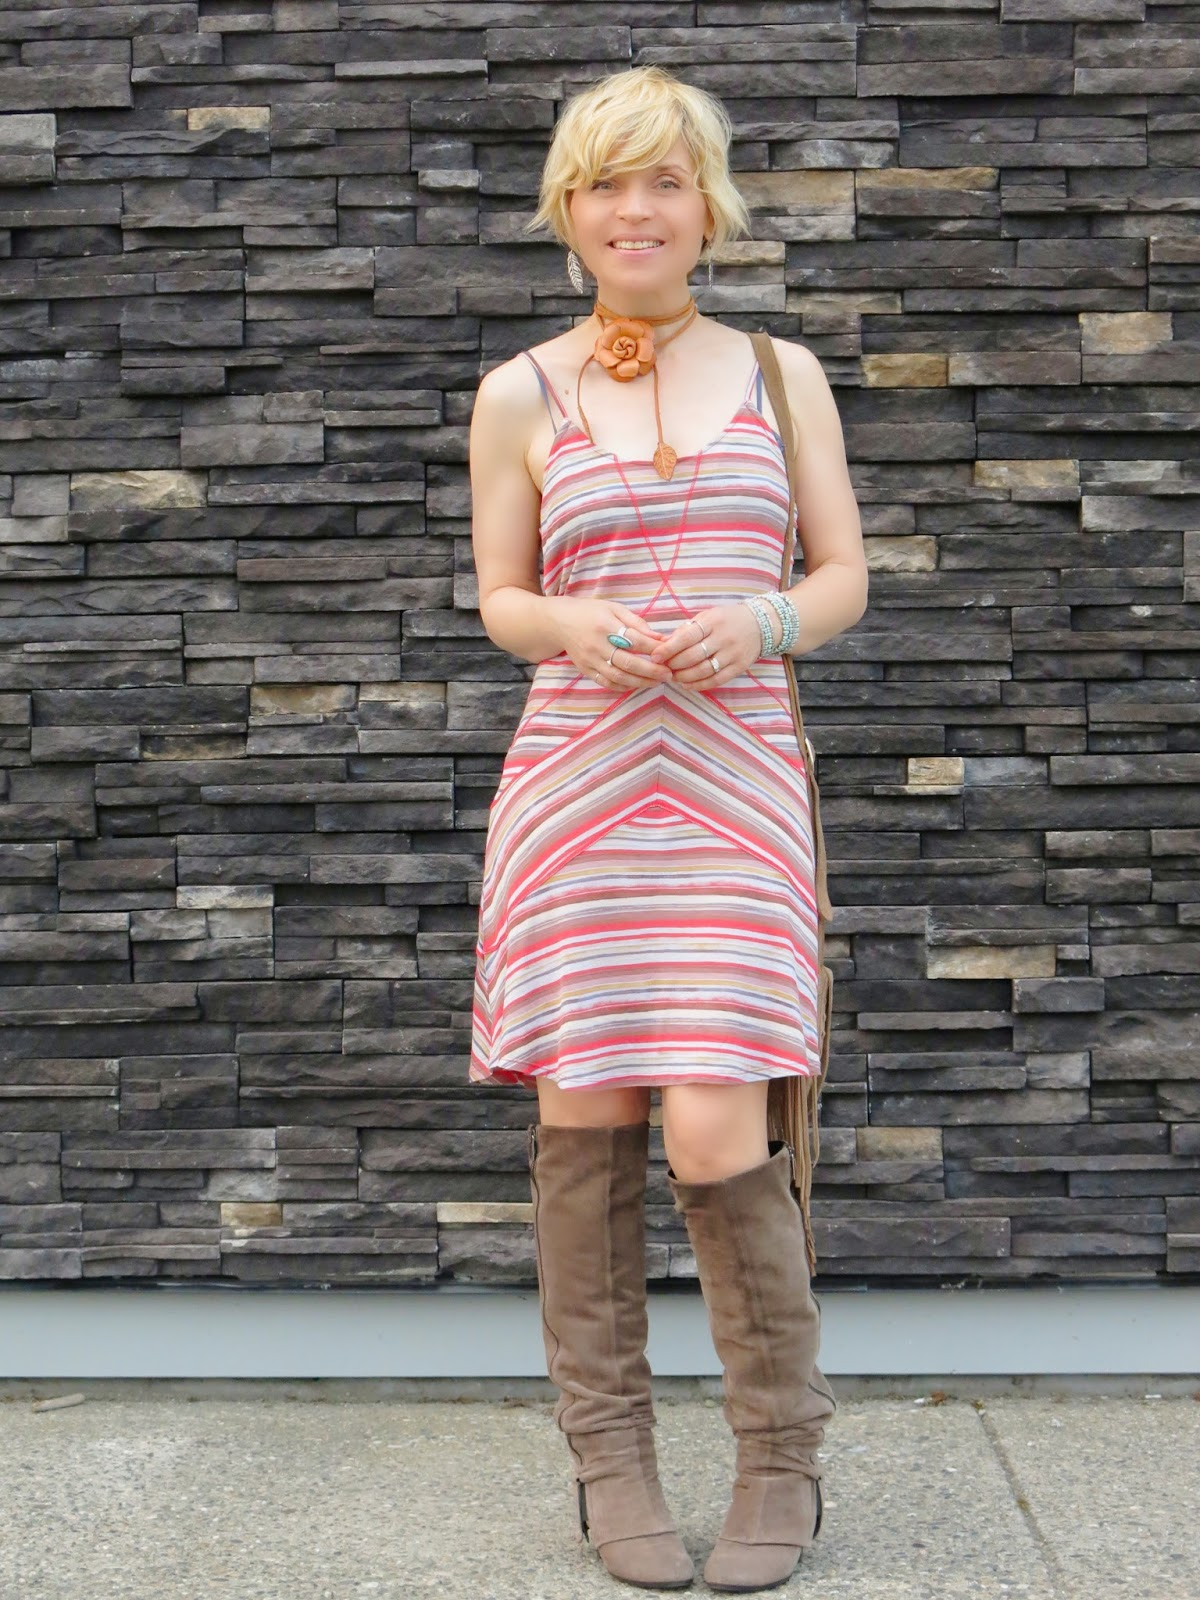 styling a striped slip dress with suede knee boots and a fringy cross-body bag